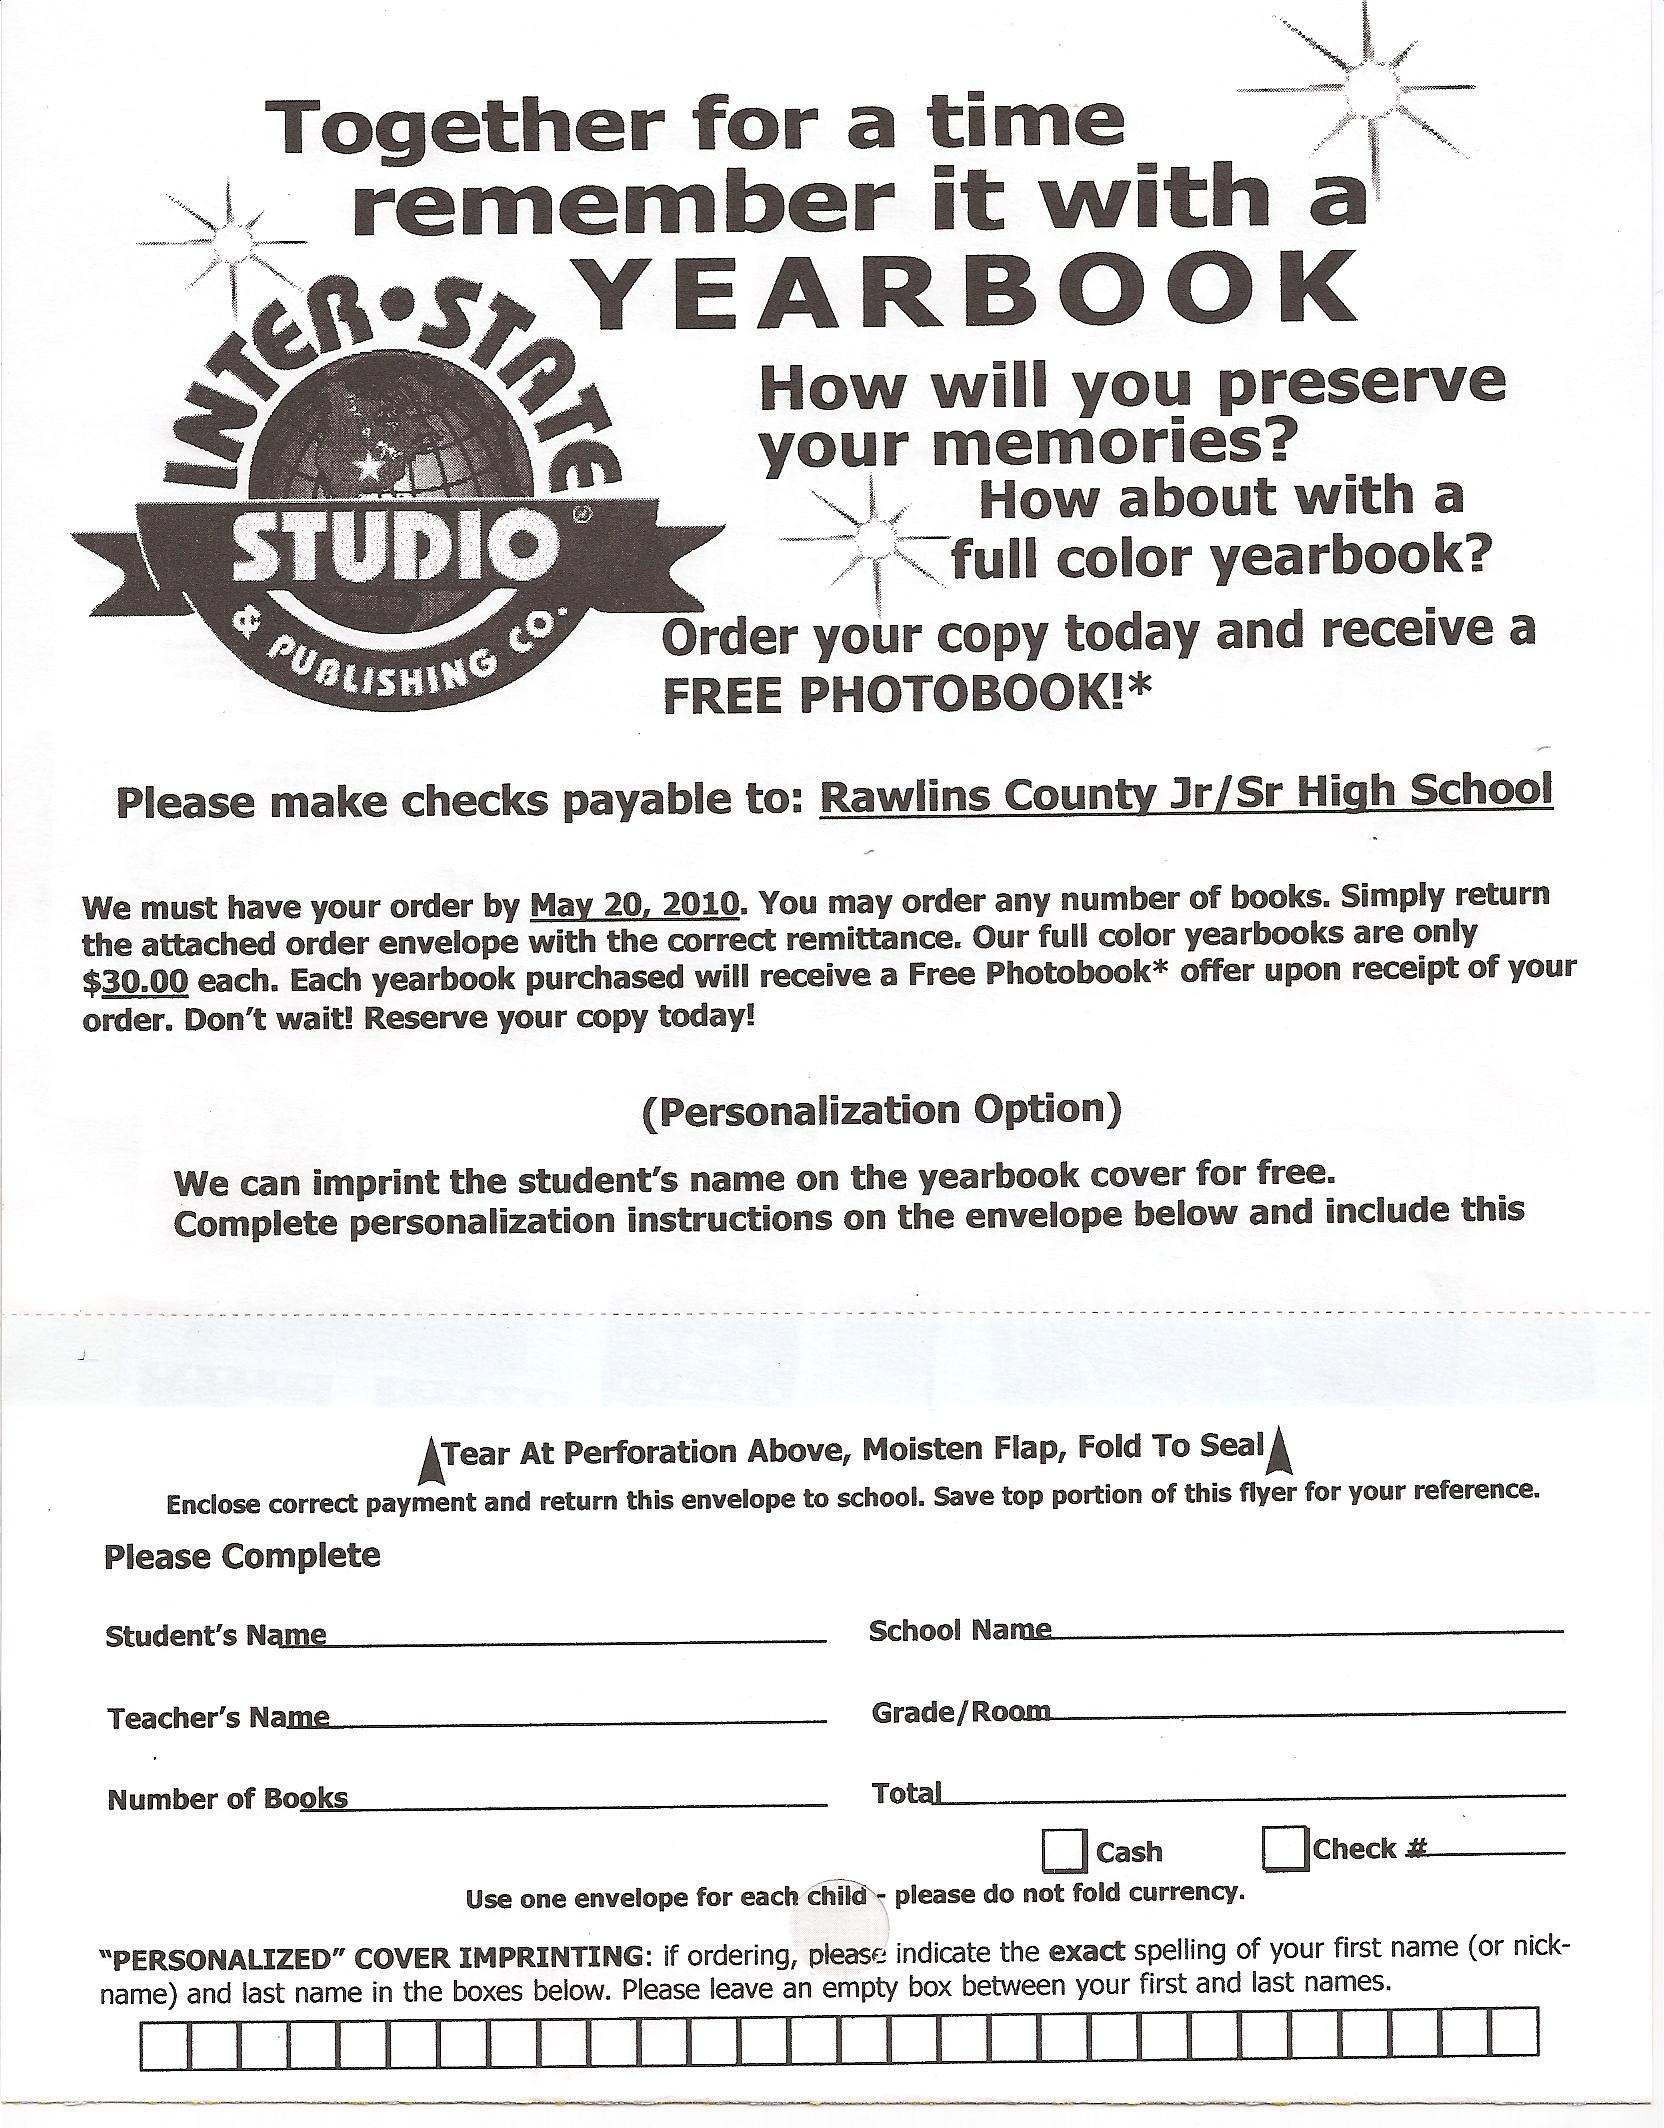 RCHS Yearbook Order Form